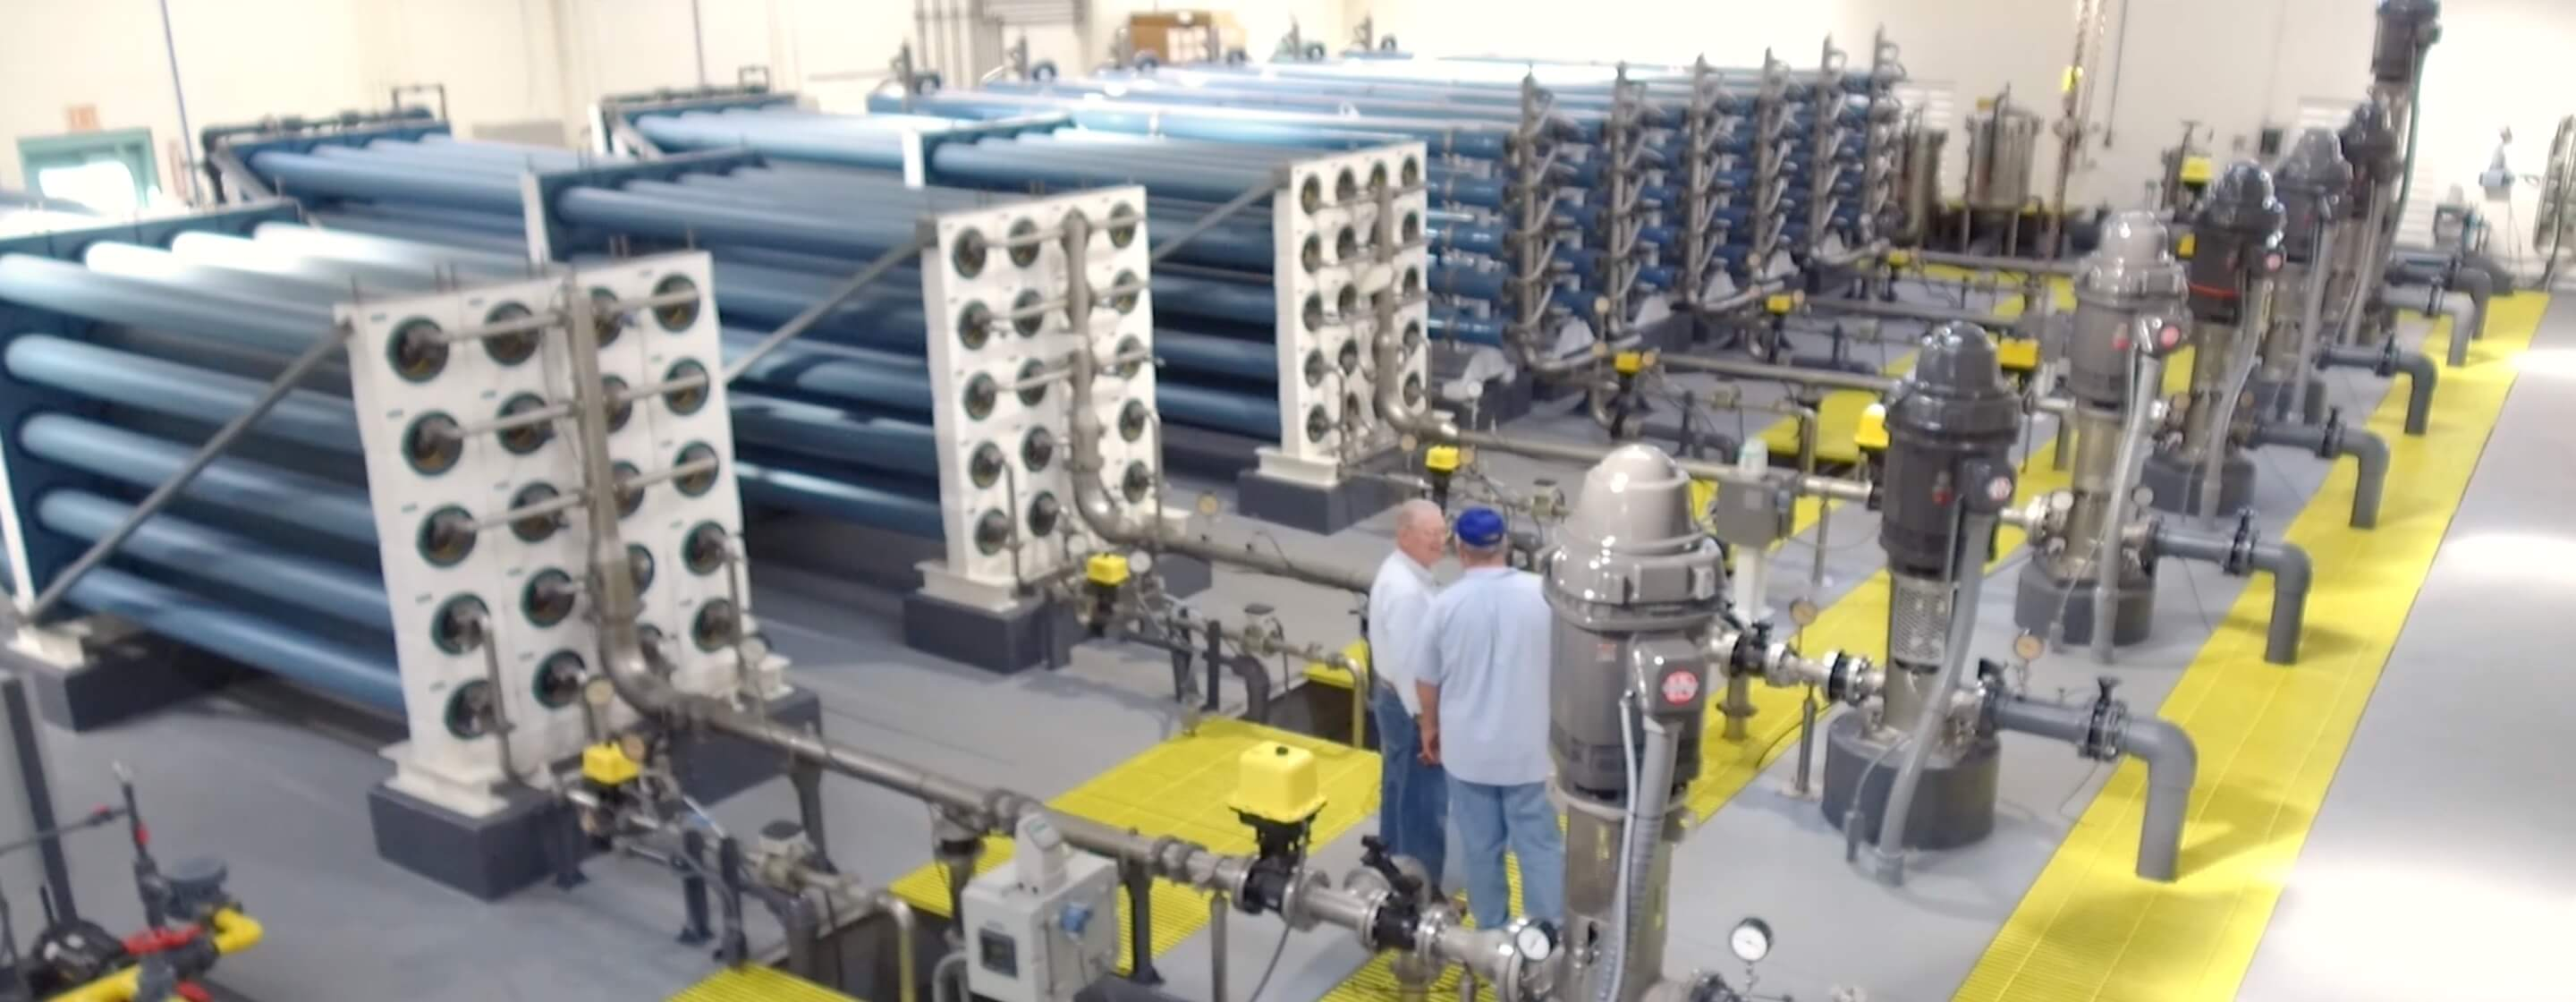 Multiple arrays of stacked reverse osmosis elements in a industrial water-treatment room, with two men consulting together